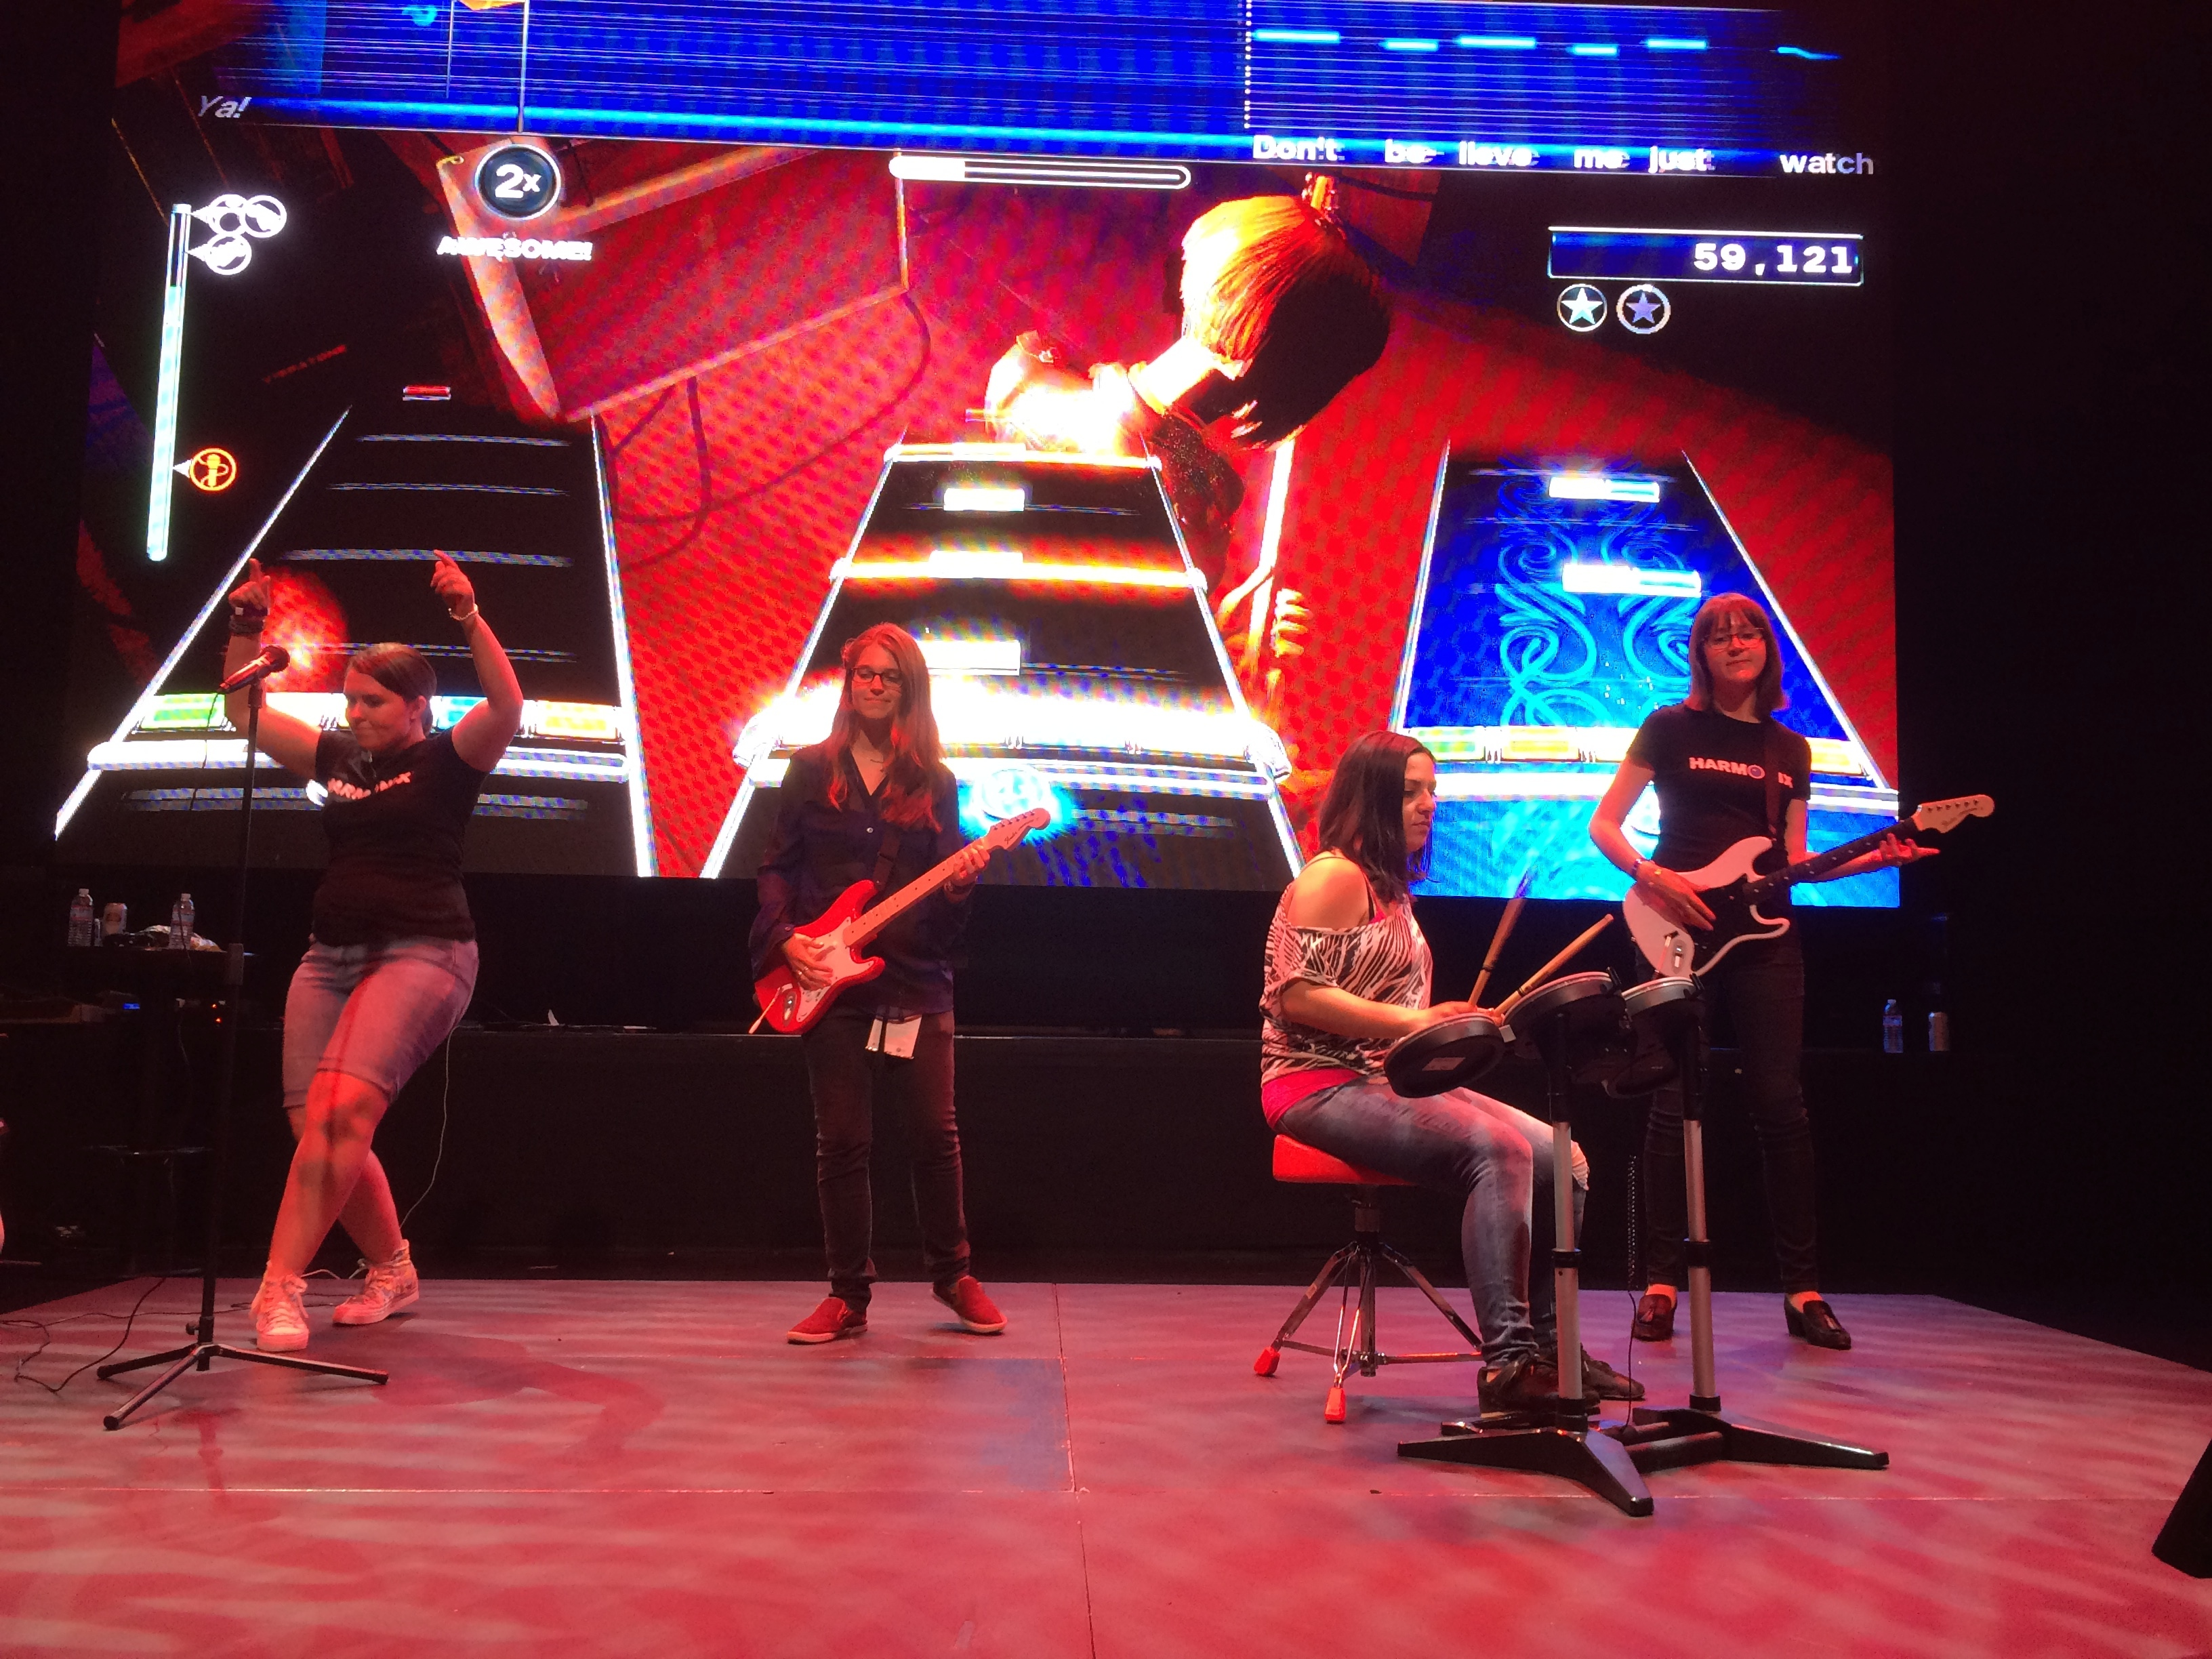 Harmonix Devs on the Rock Band Stage